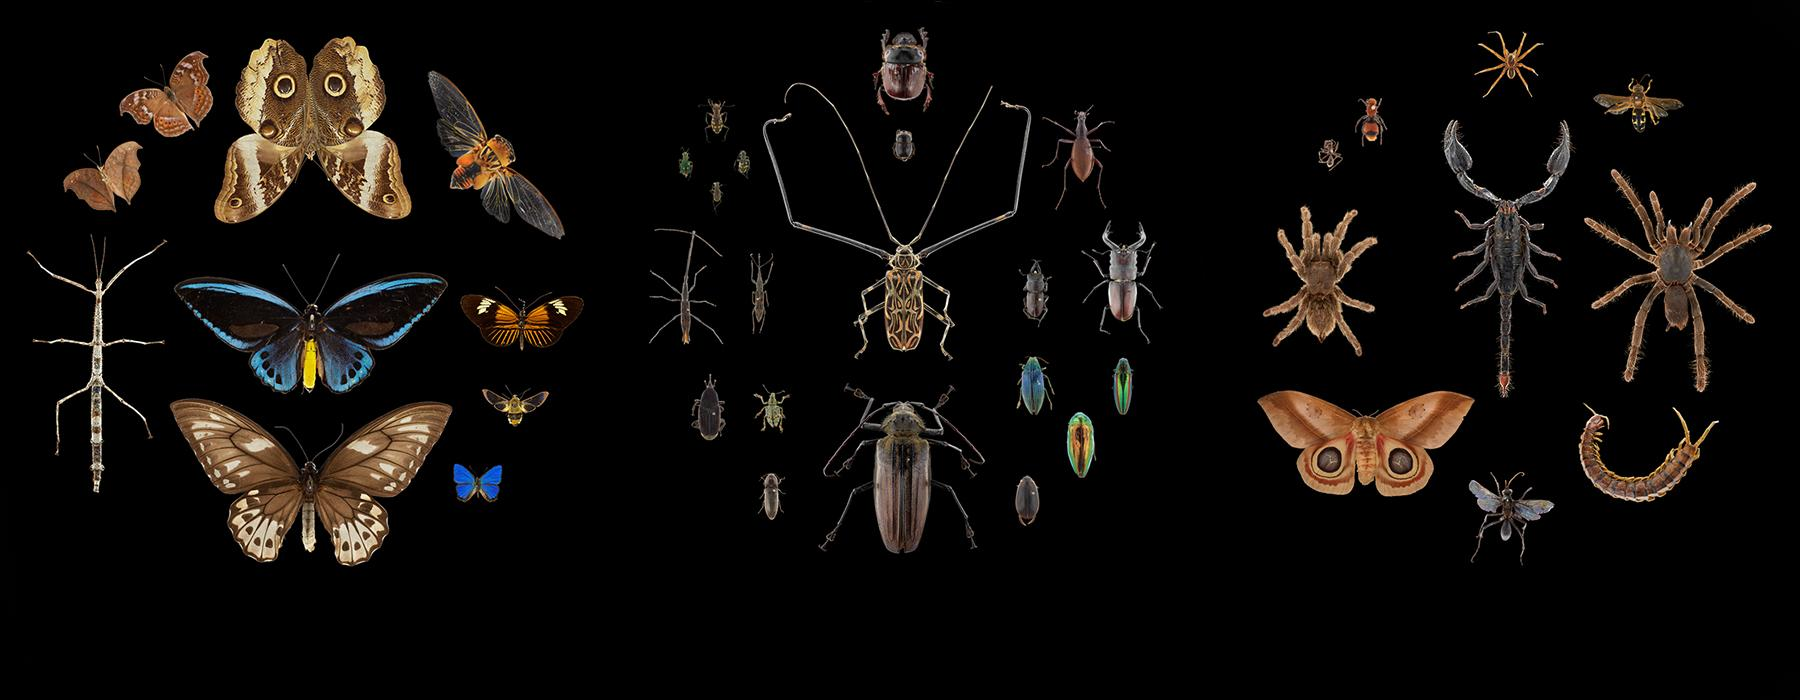 Lots of bugs from moths to spiders, stick insects to beetles